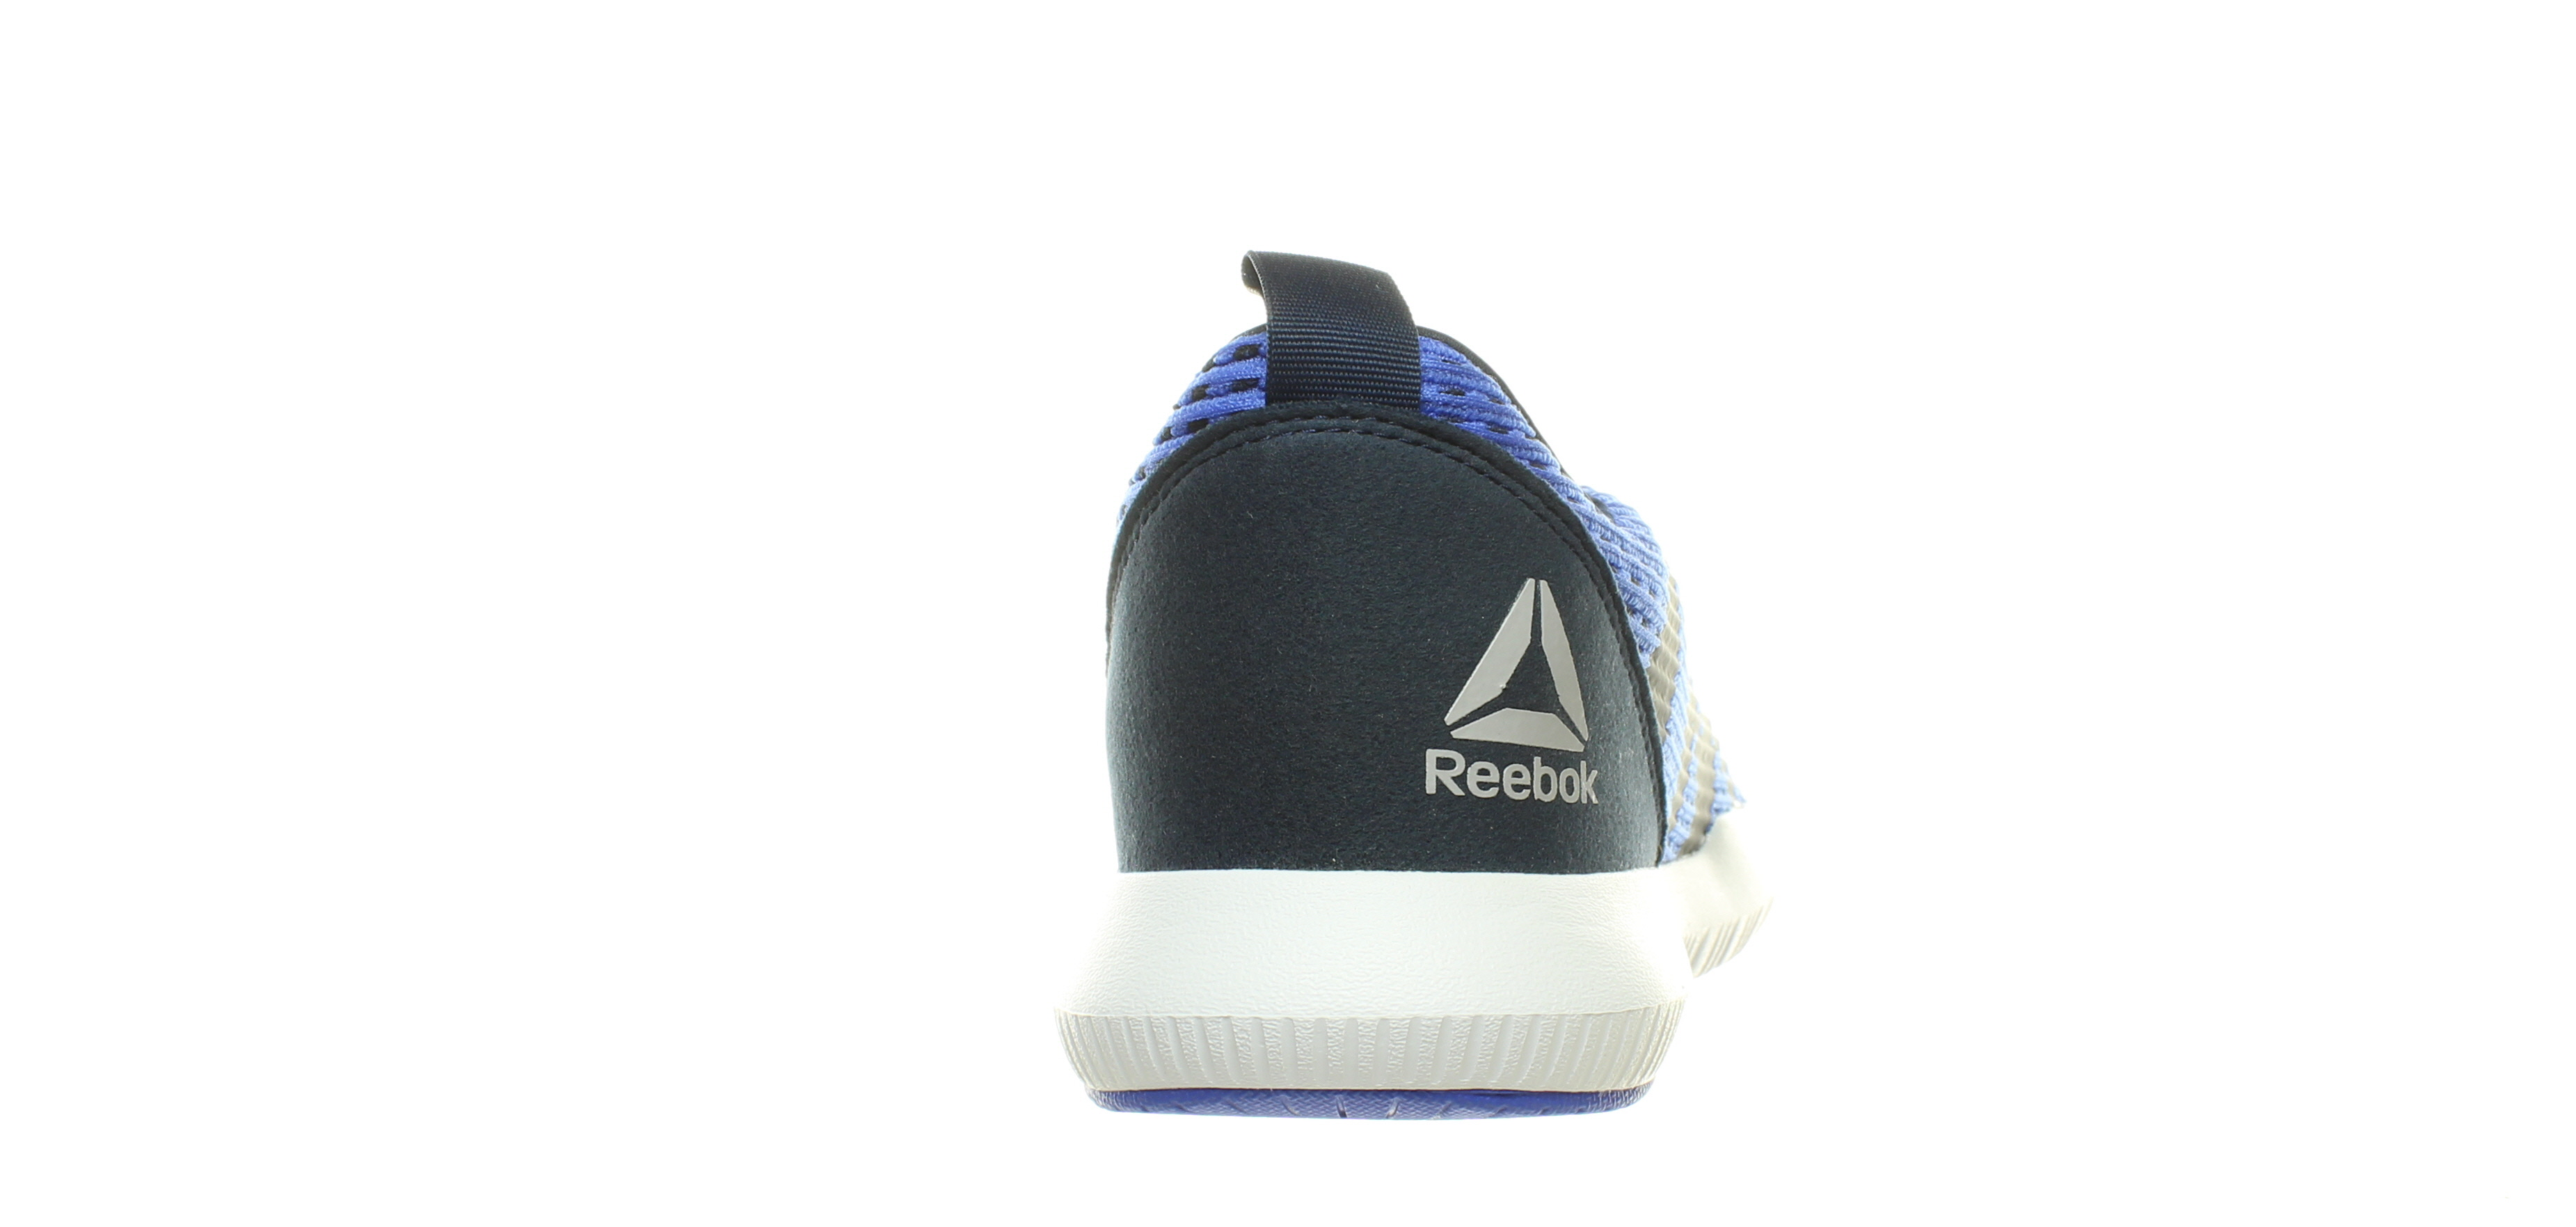 Reebok-Mens-Athletic-Reago-Pulse-Cross-Training-Shoes thumbnail 11